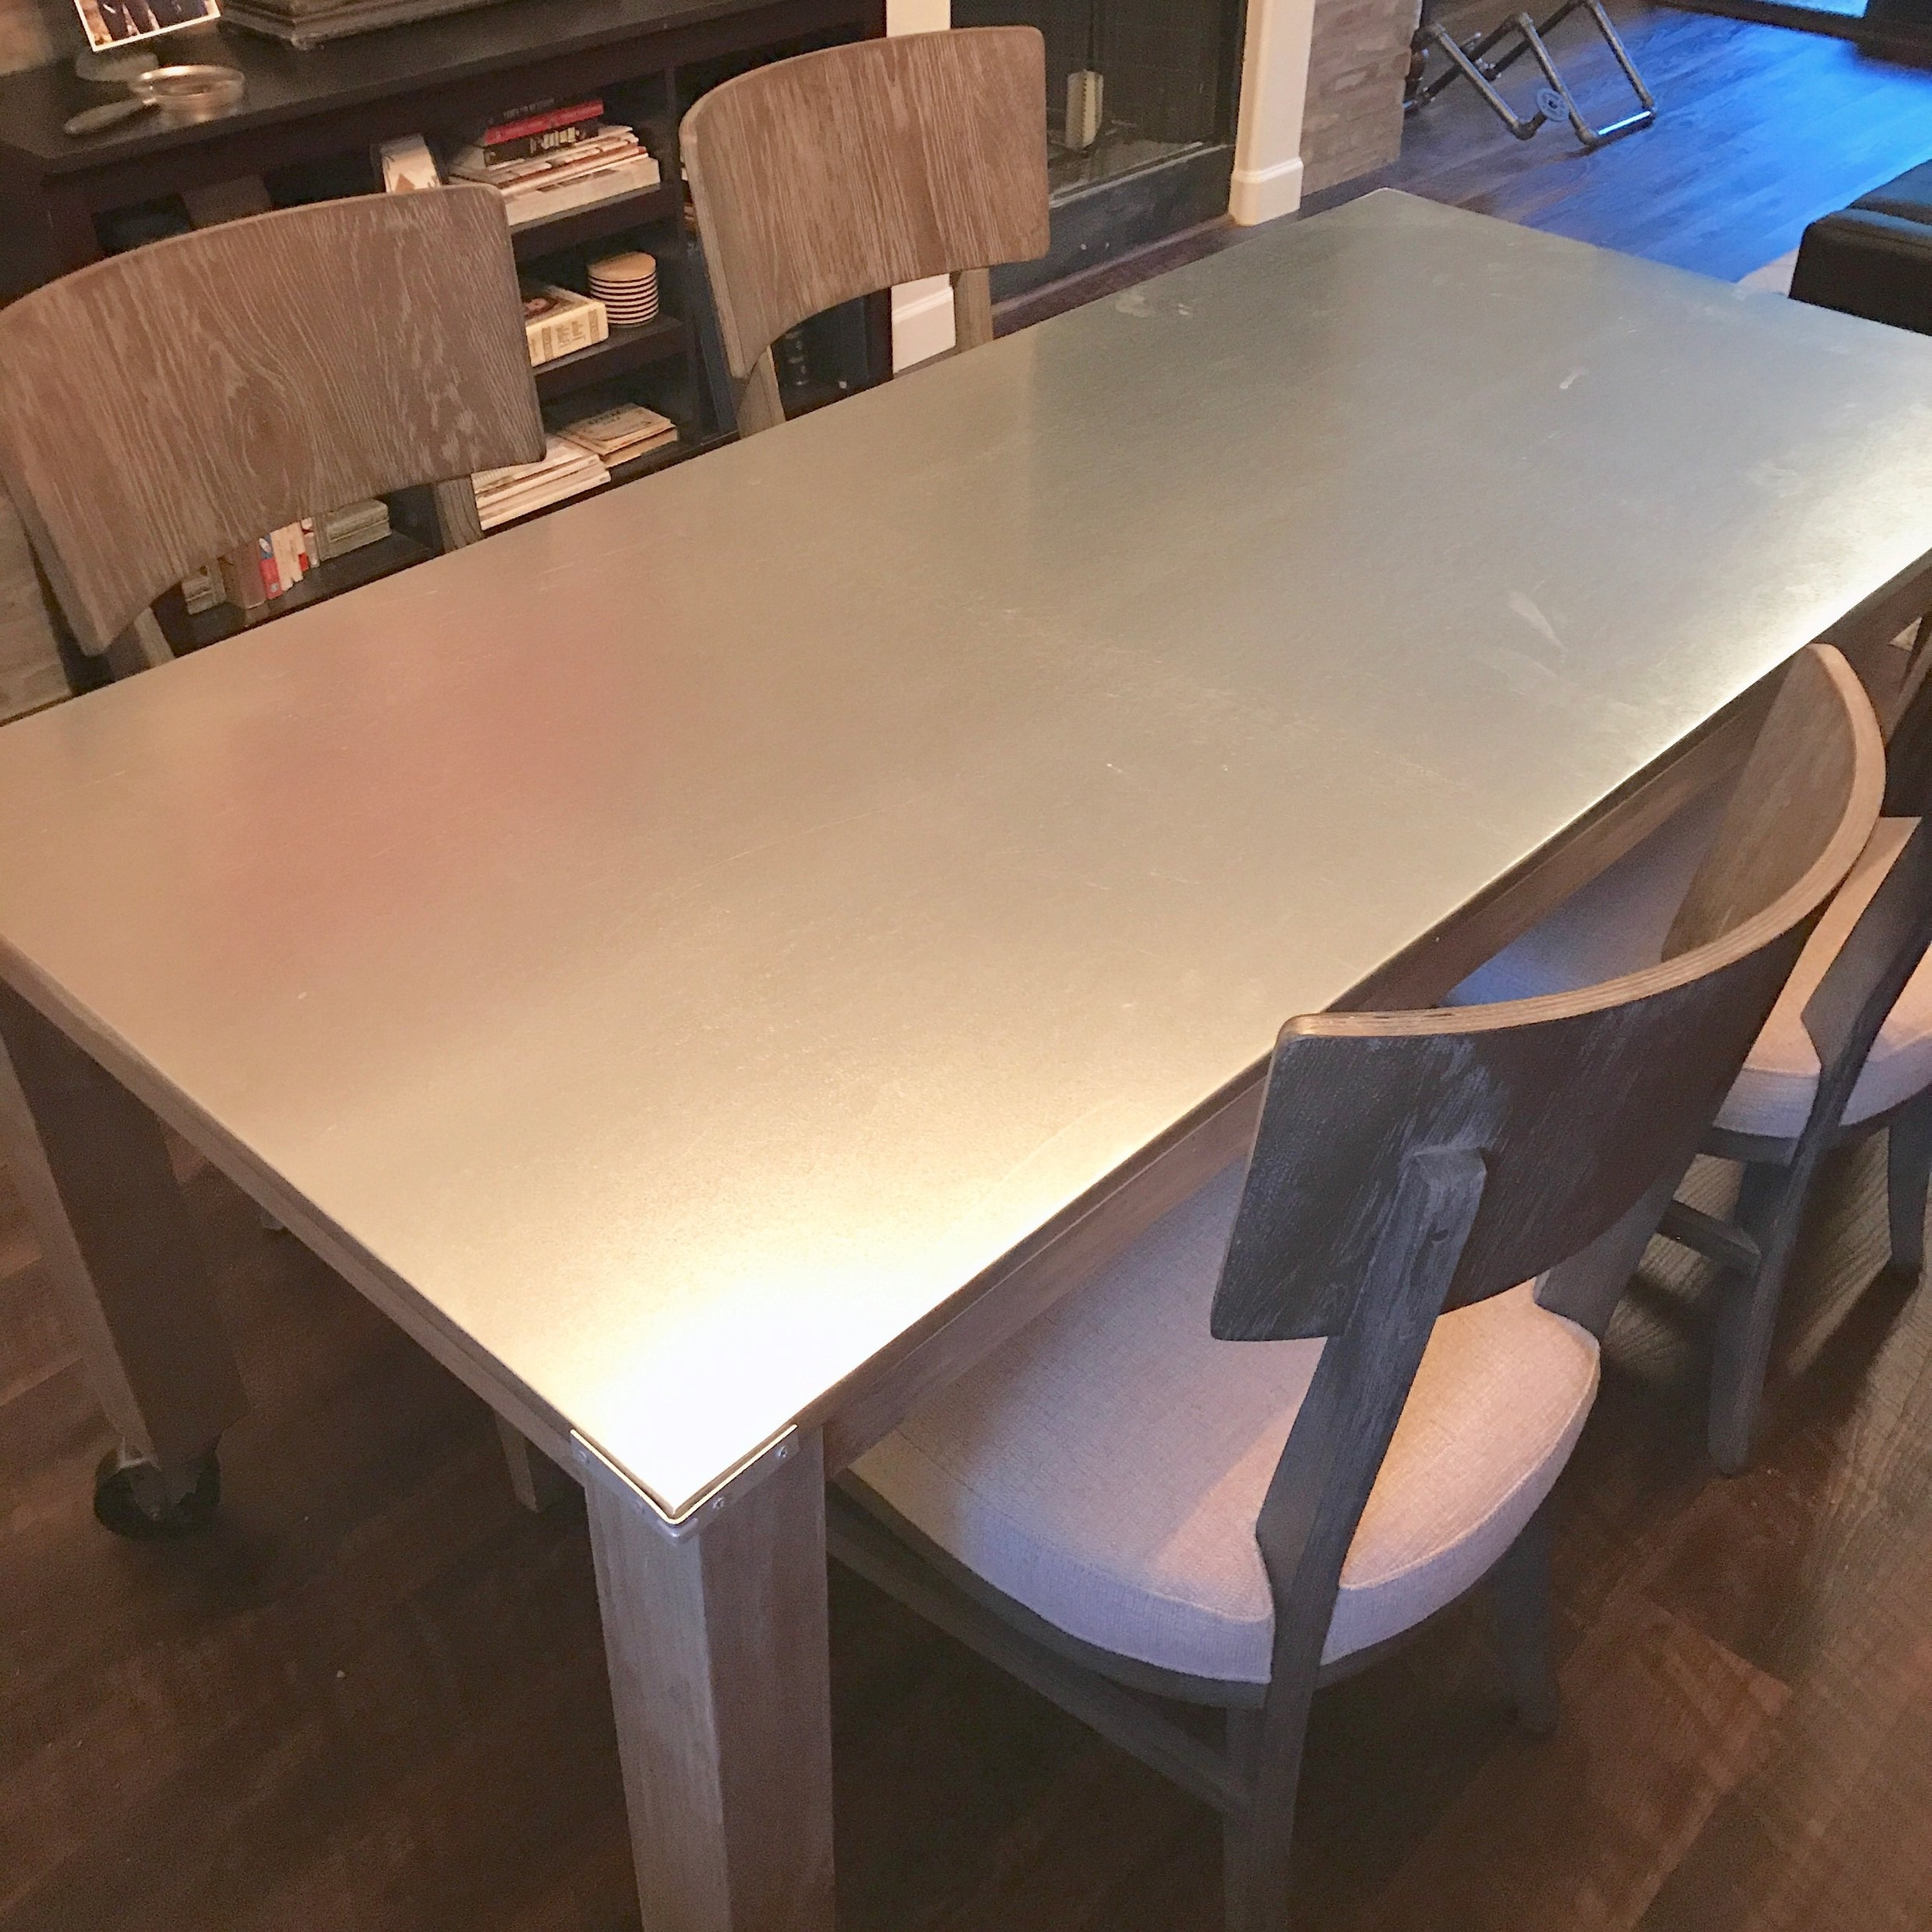 Galvanized Metal Dining Table on Casters